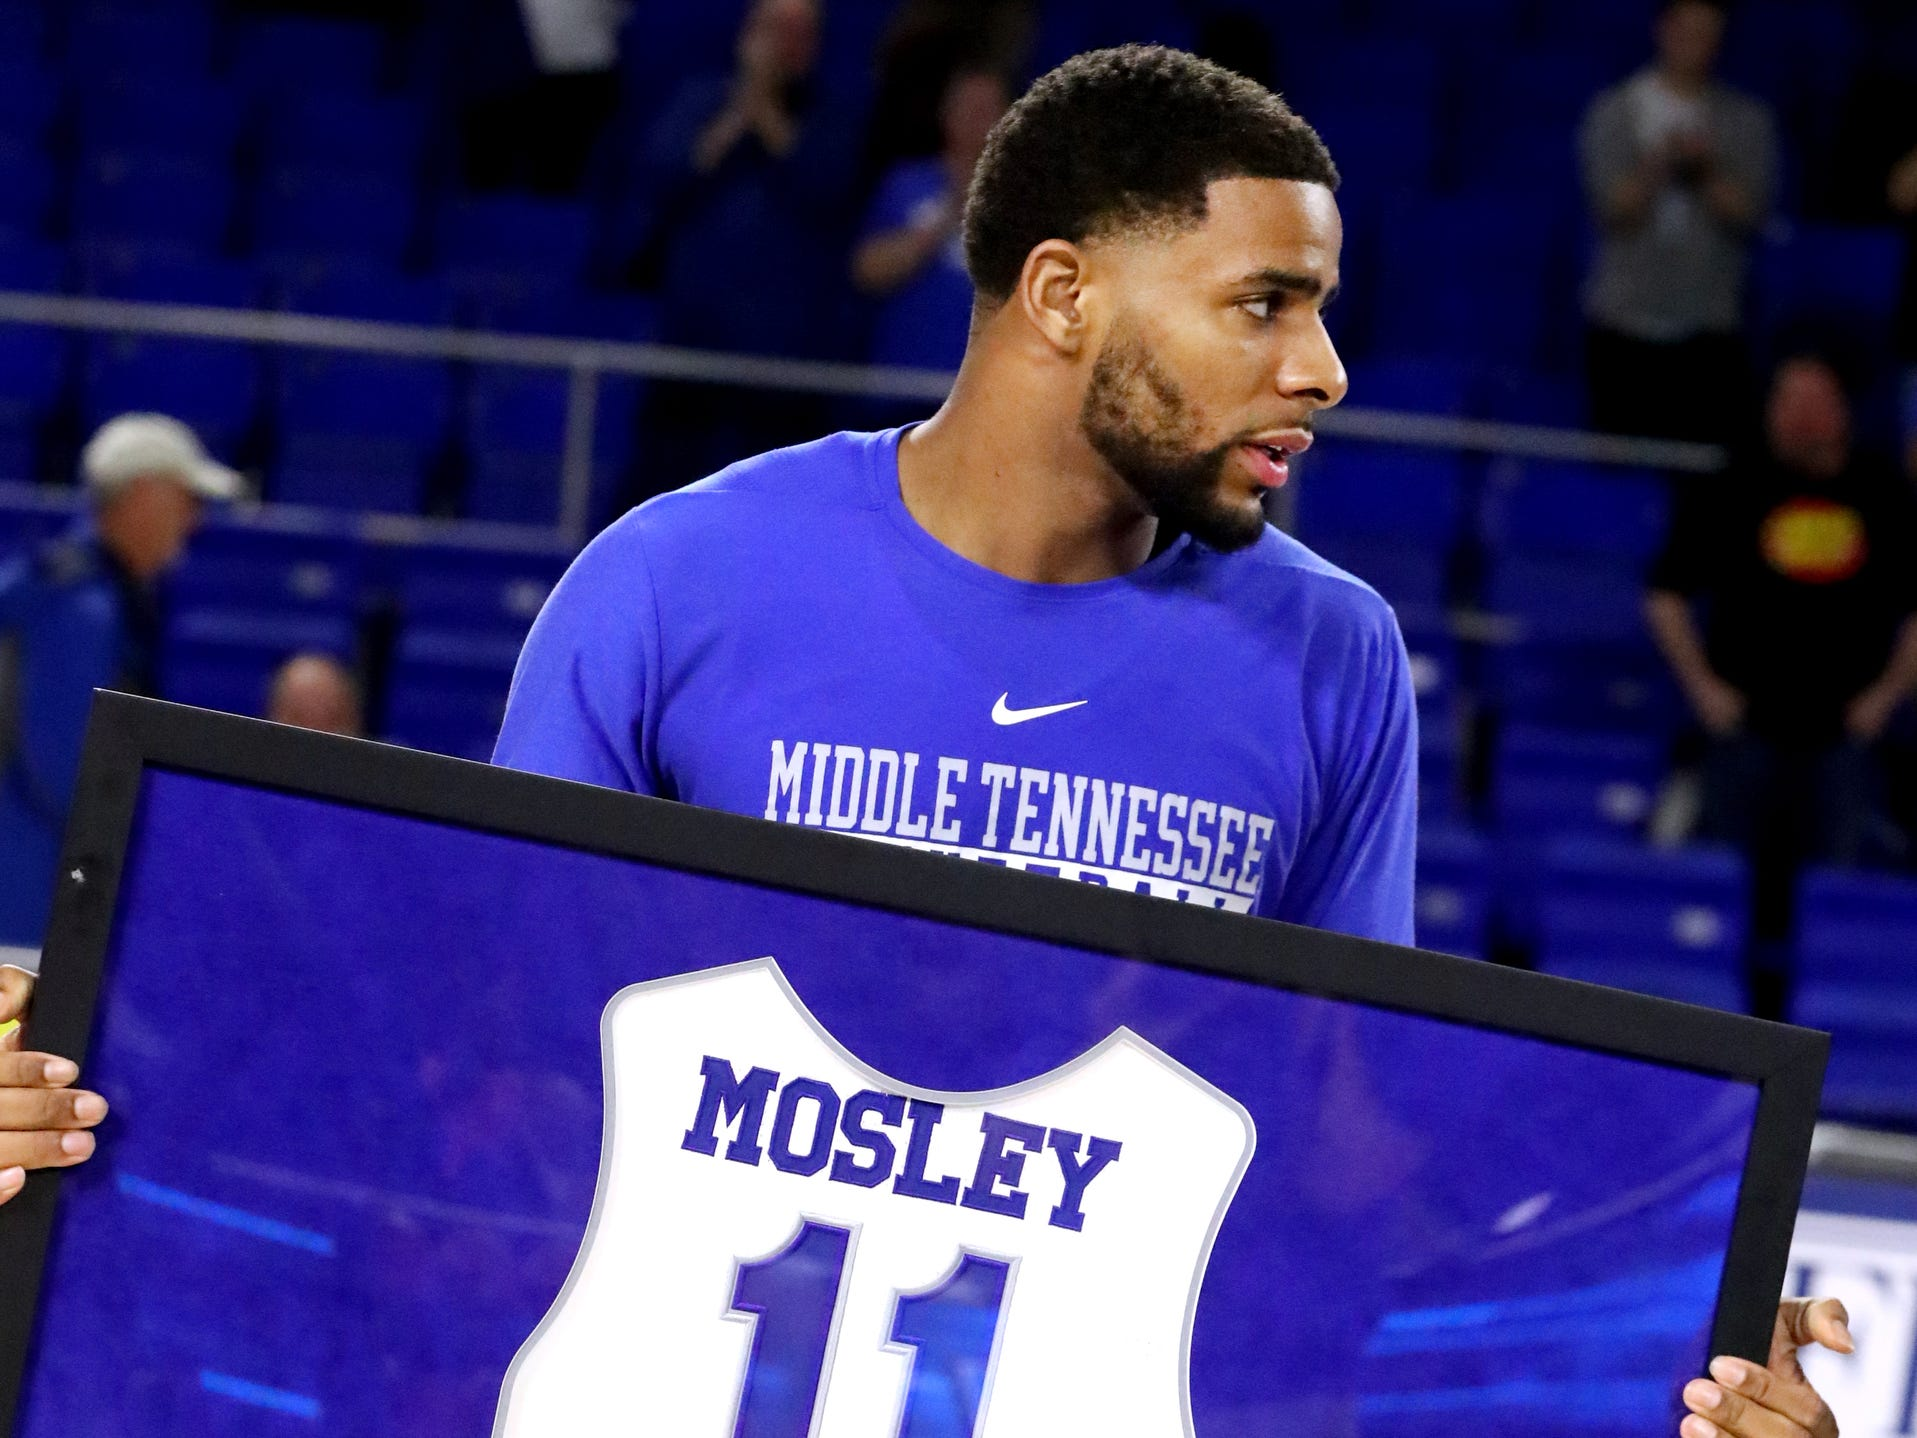 MTSU senior guard Lawrence Mosley (11) was honored during senior night before the game against UTEP on Saturday, March 9, 2019, at Murphy Center in Murfreesboro, Tenn.